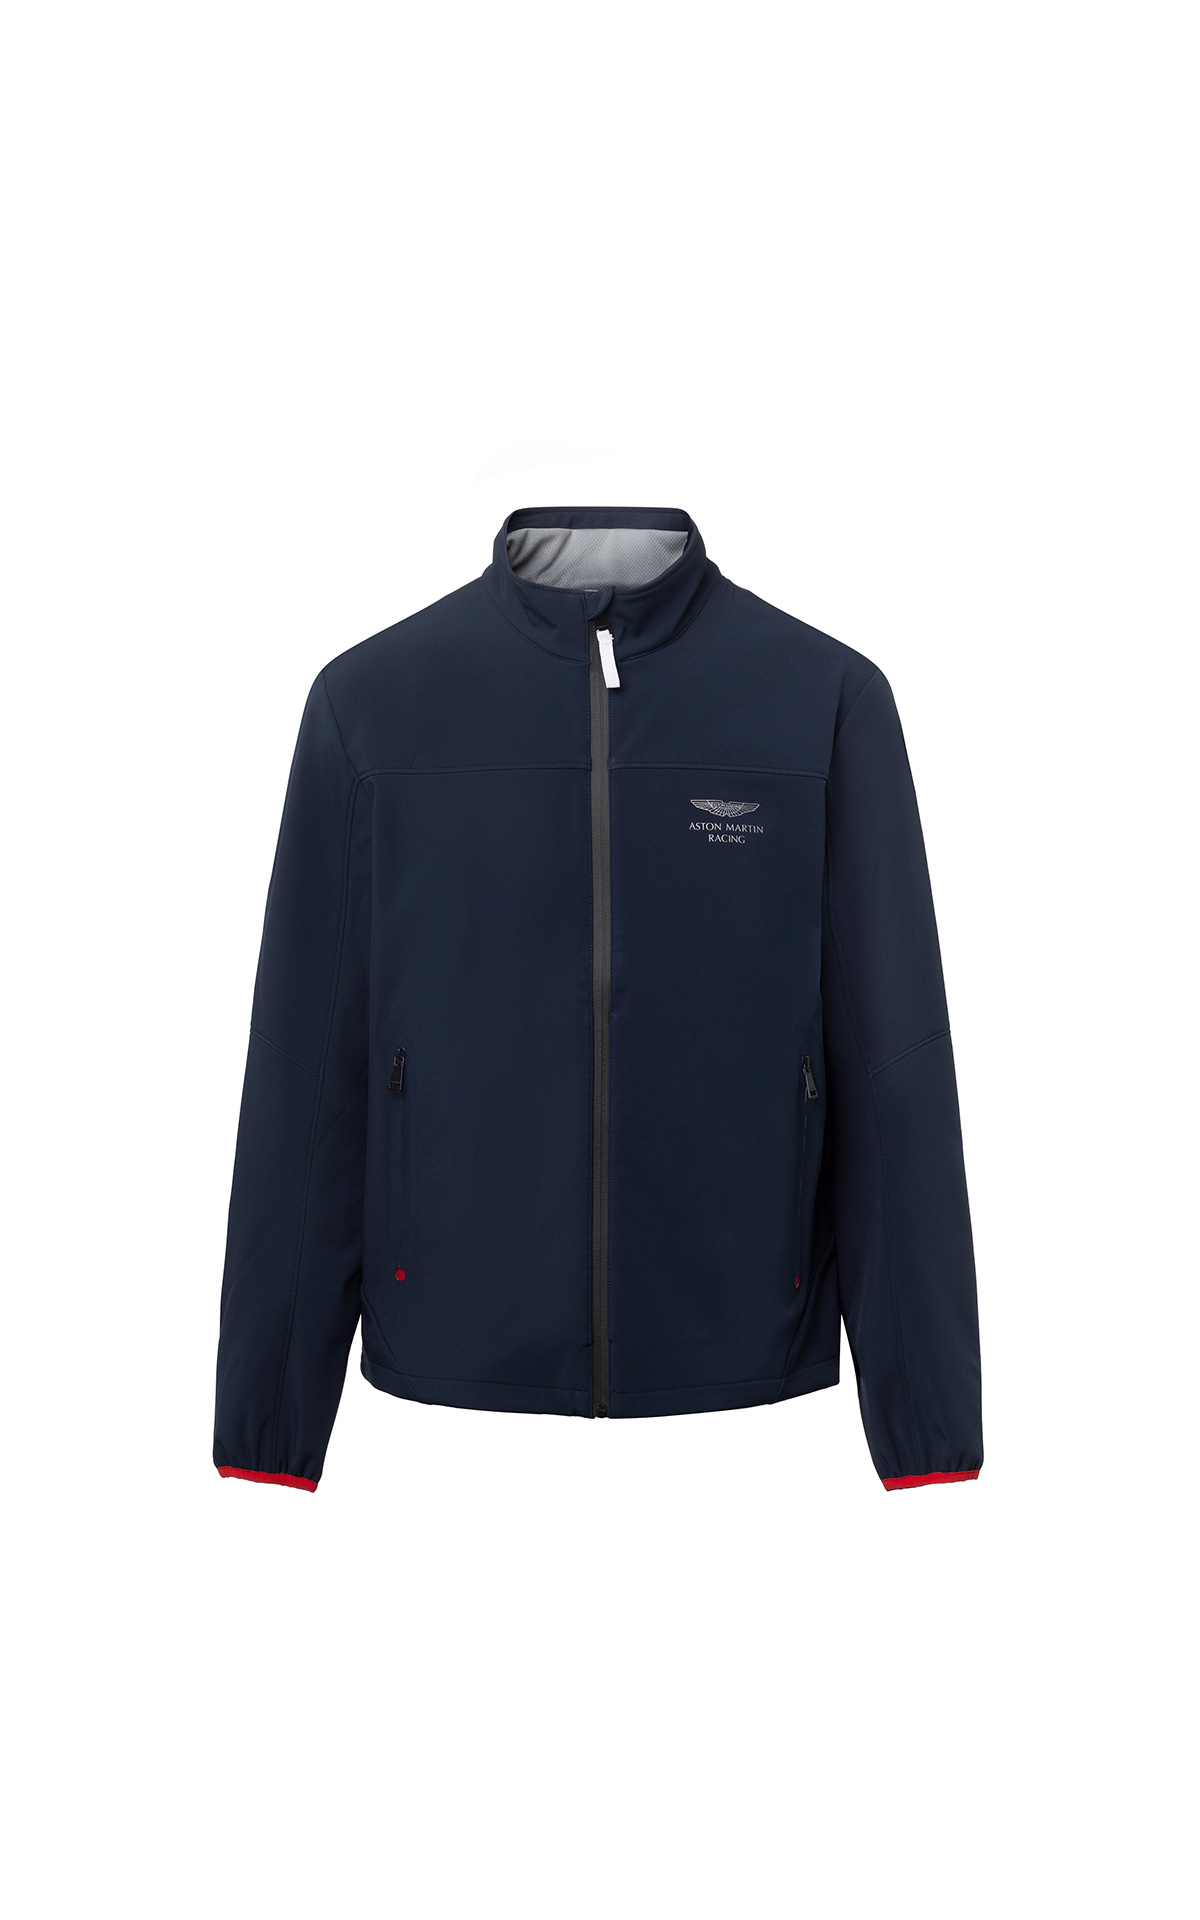 Hackett-London's Aston Martin Racing Softshell Jacket